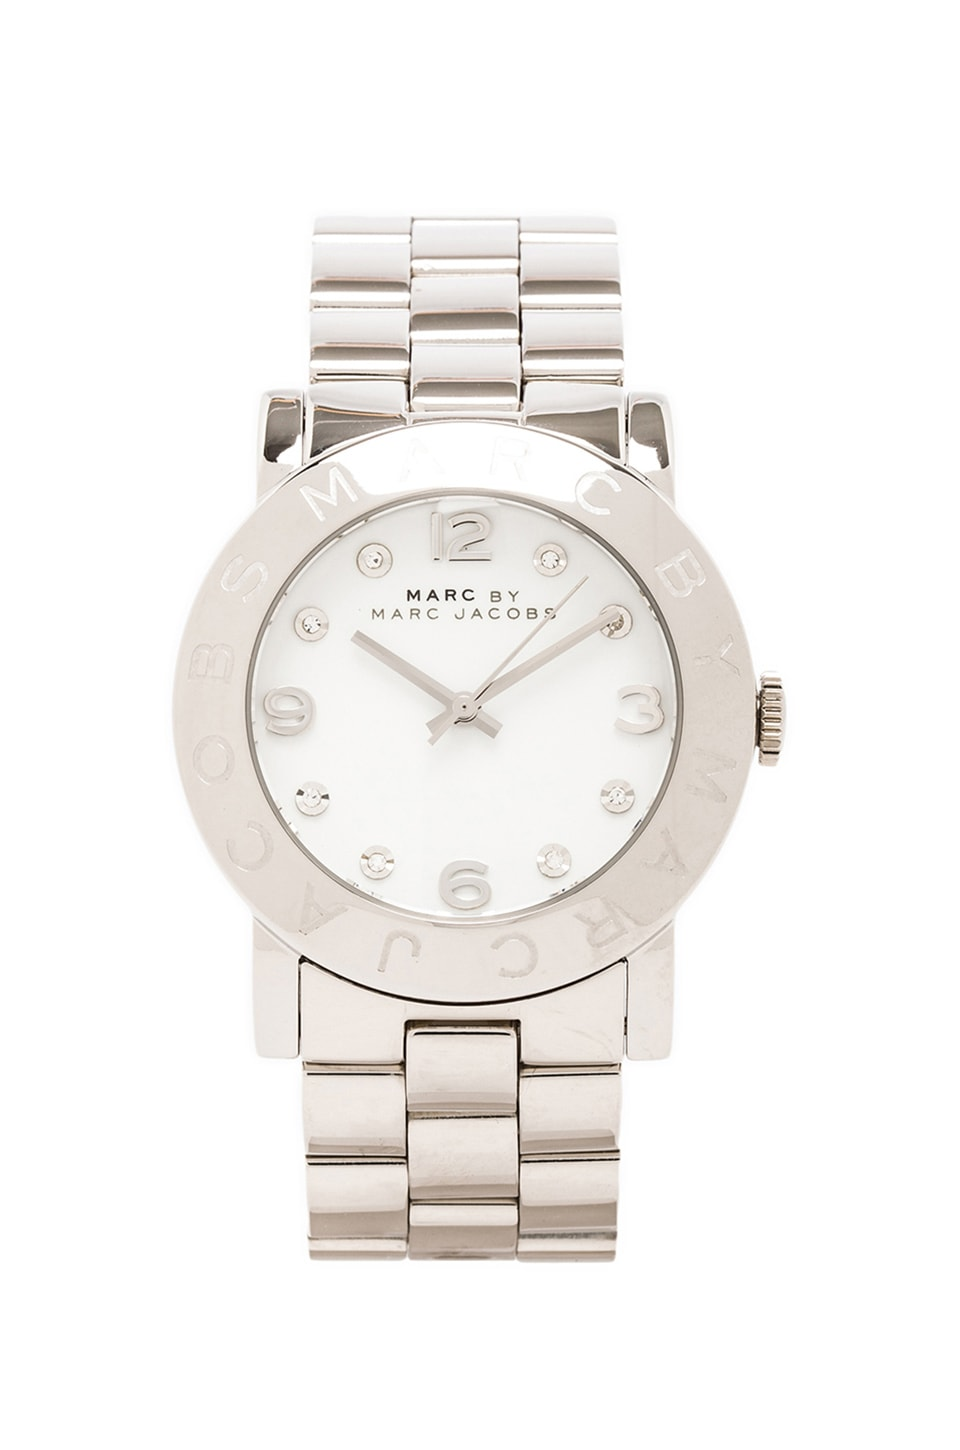 Marc by Marc Jacobs Montre Amy en Argent